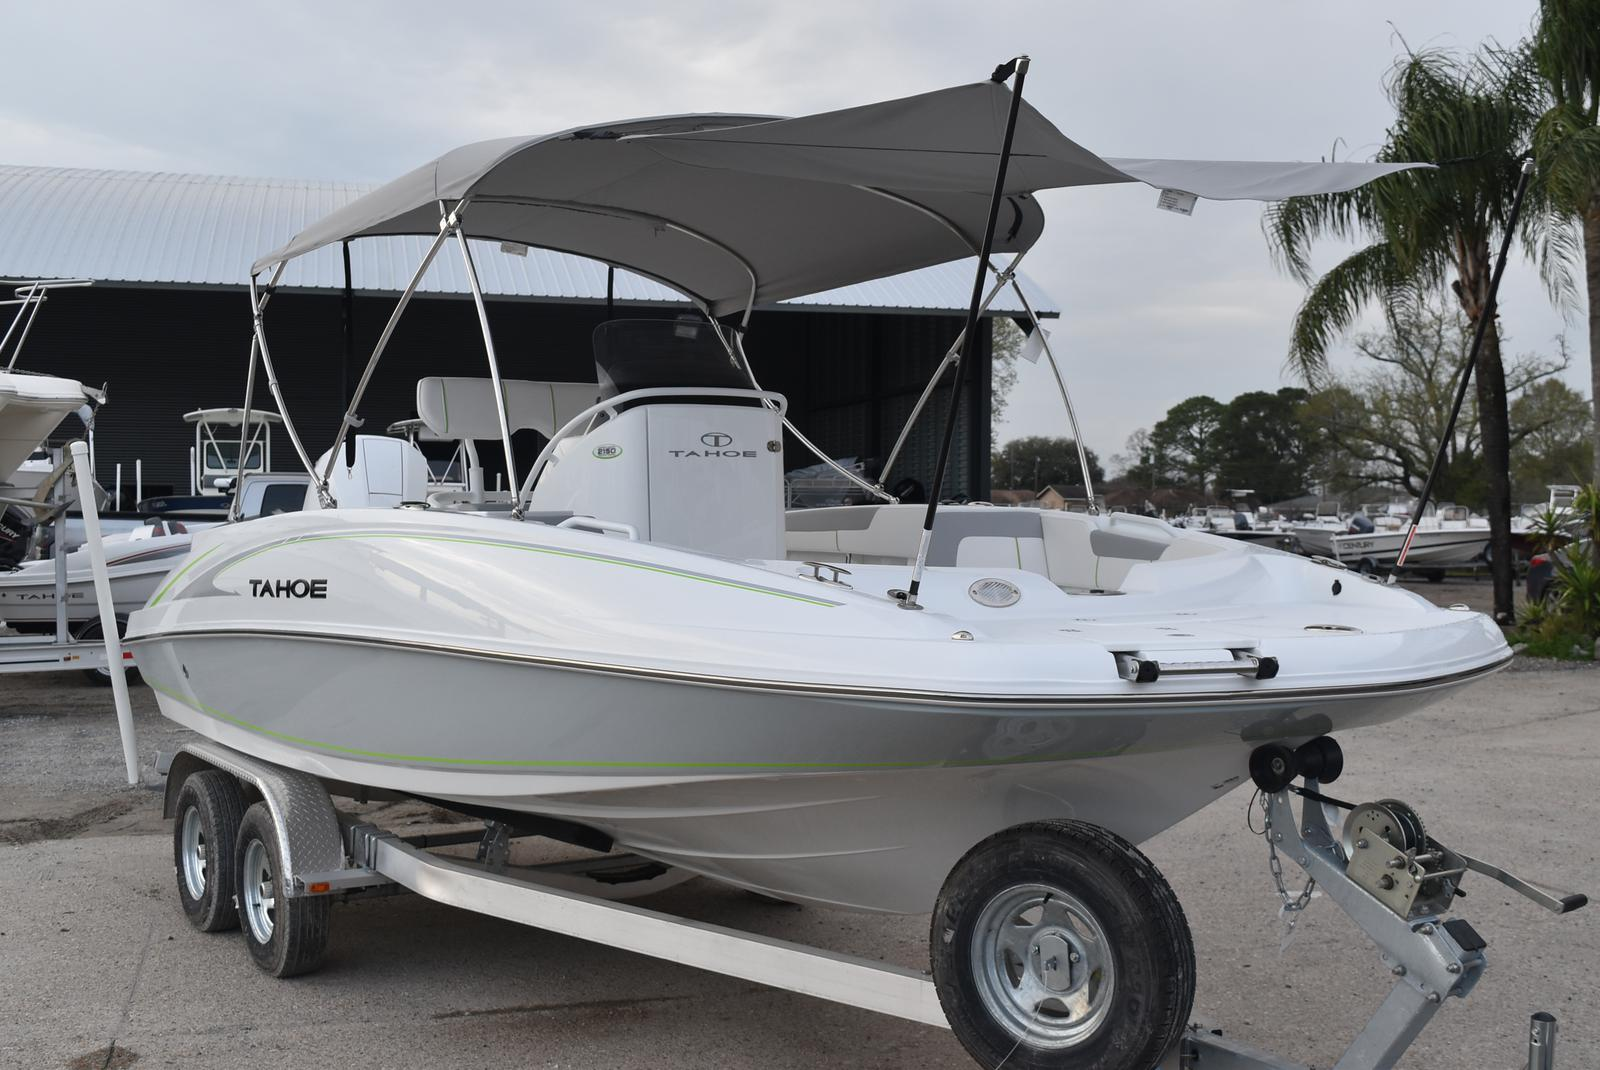 2021 Tahoe boat for sale, model of the boat is 2150cc & Image # 15 of 17